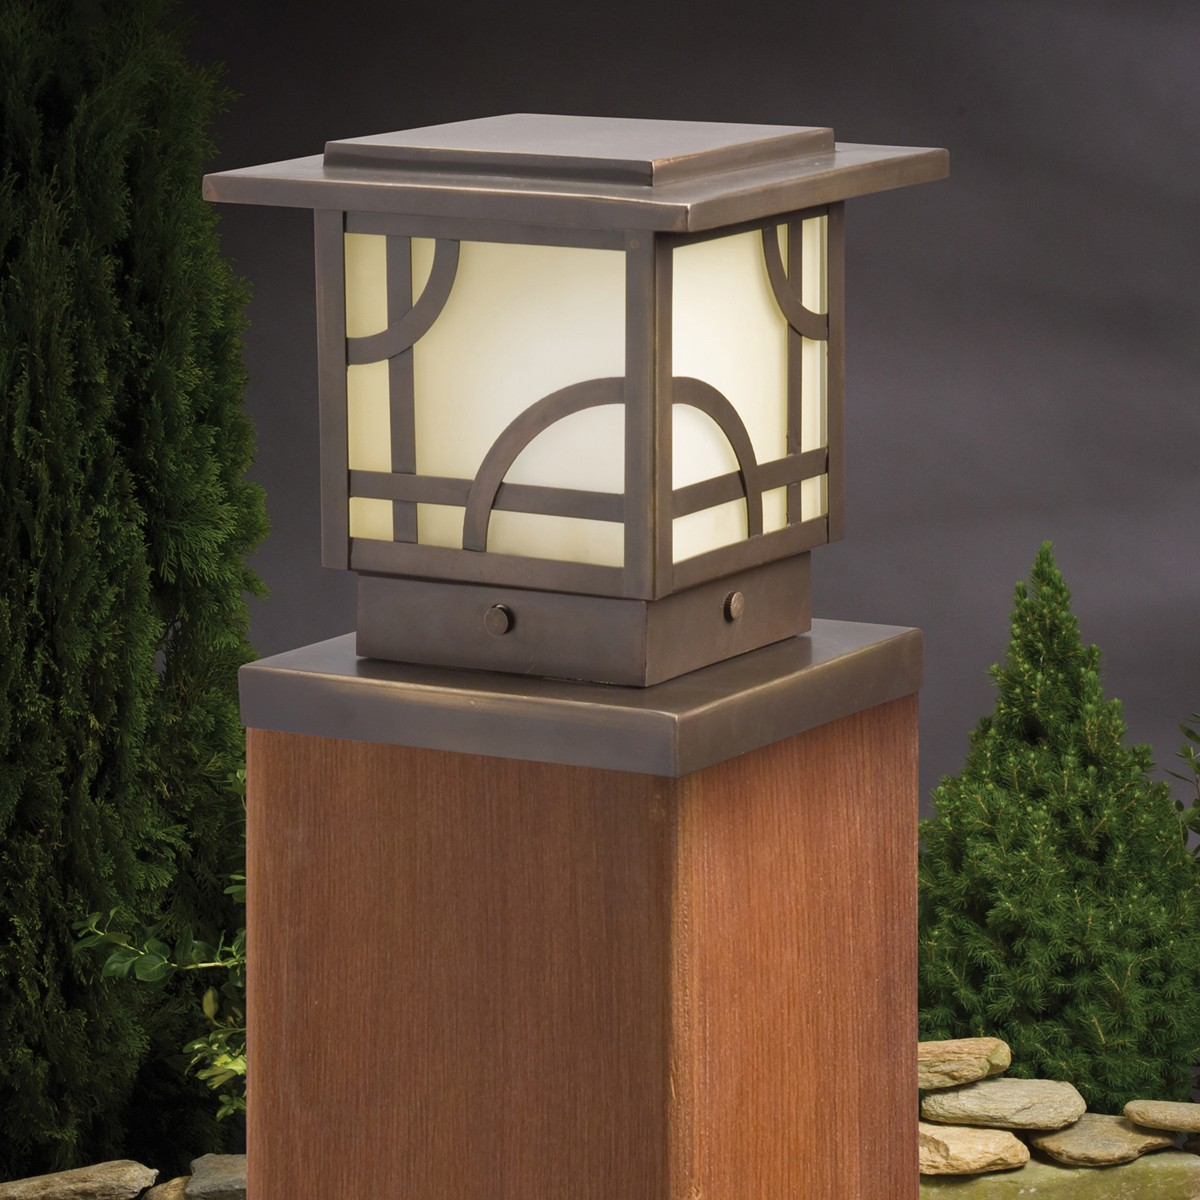 Deck post lights increase efficacy of the patio carehomedecor aloadofball Images